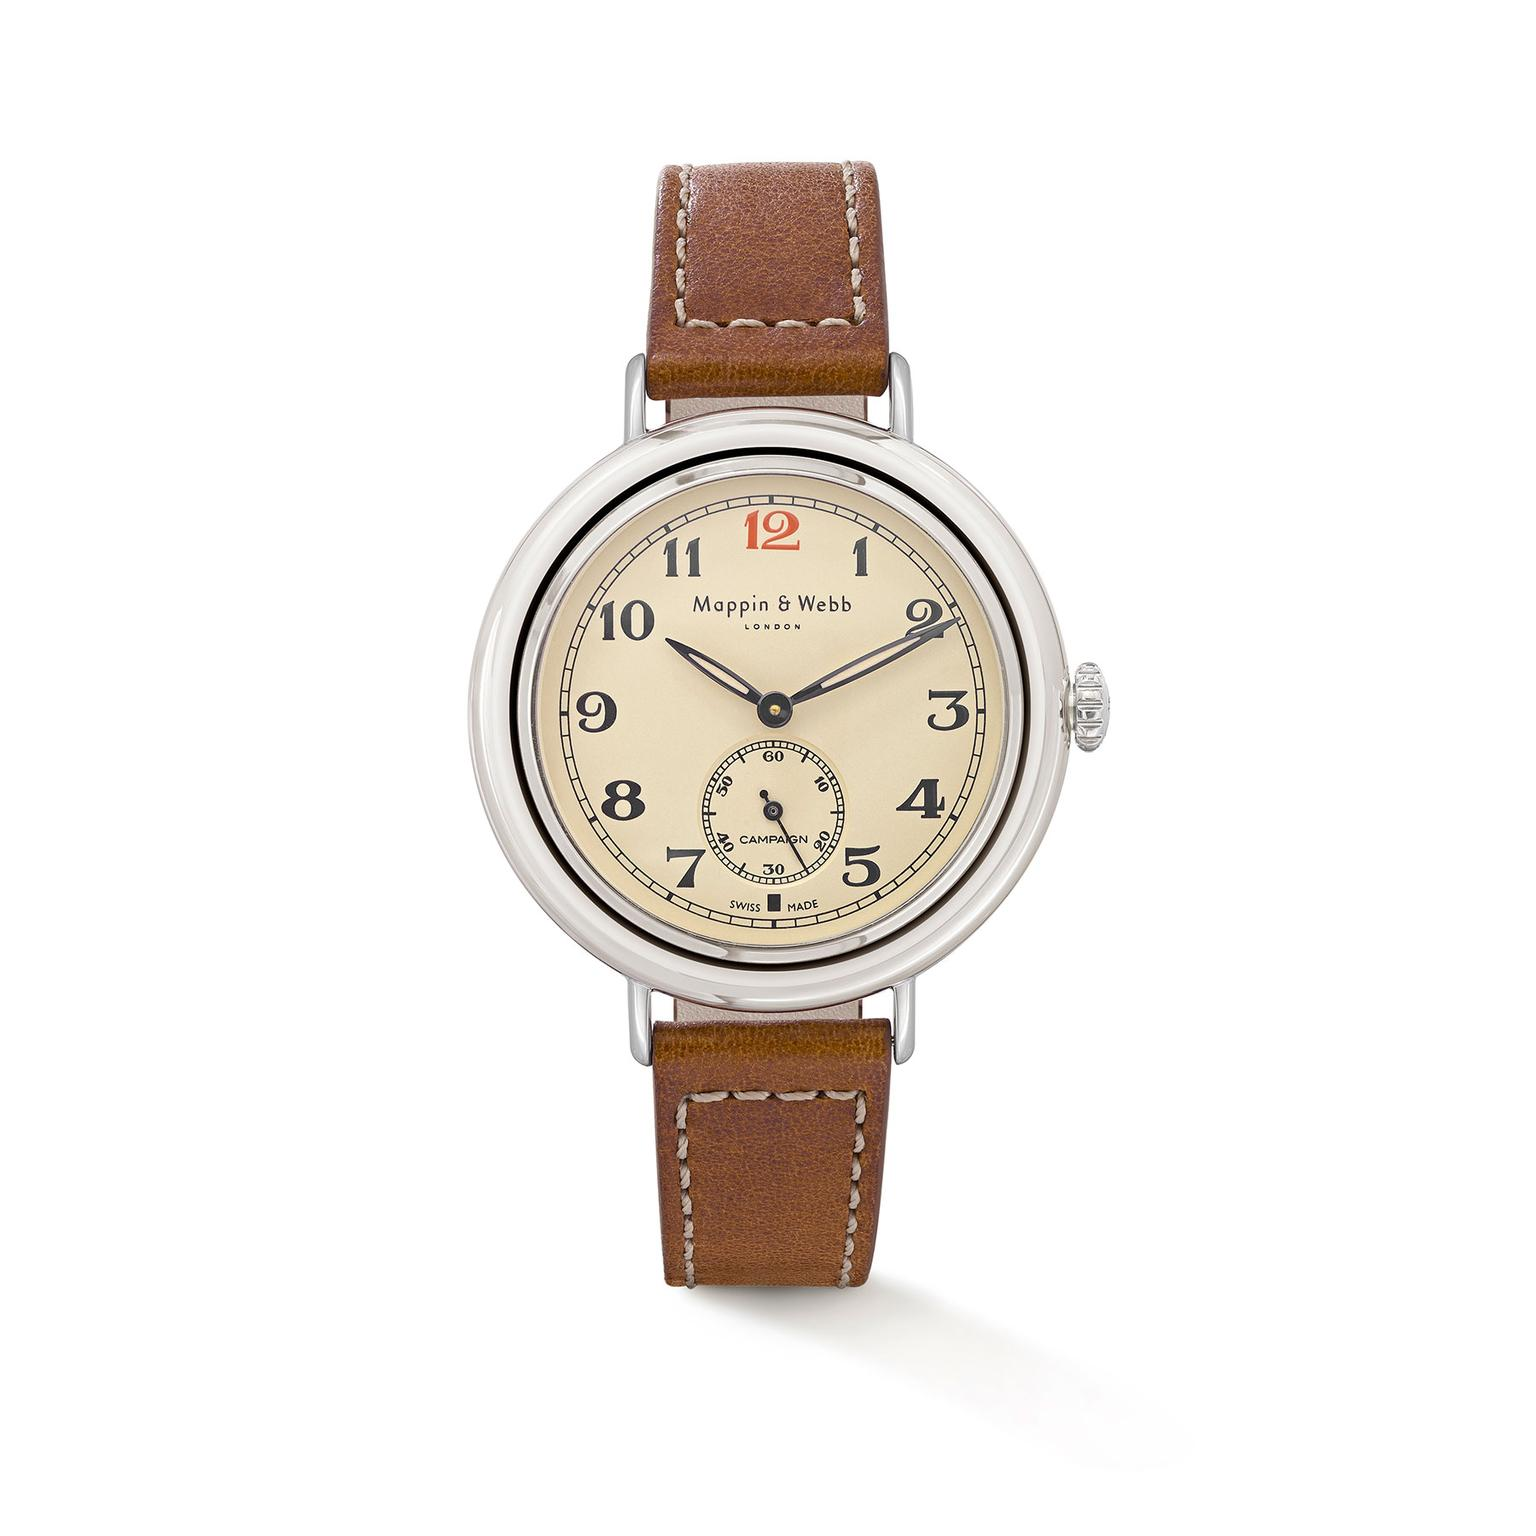 Mappin & Webb Campaign watch - limited edition